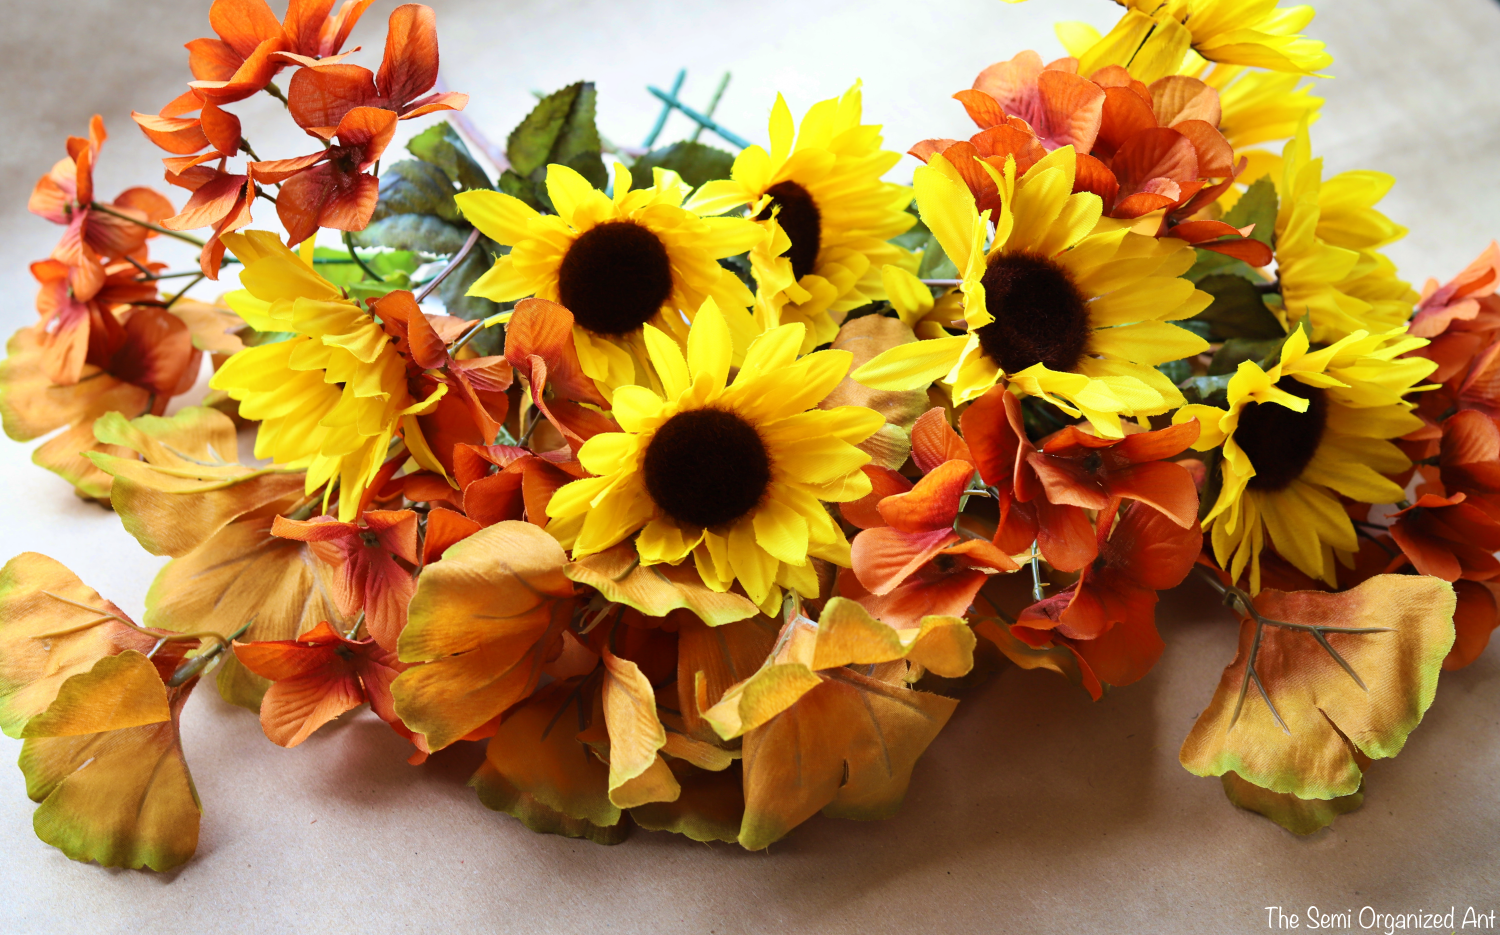 Combining Dollar Tree Flowers with Items I Already Have for the Perfect Fall Centerpiece-The Semi Organized Ant